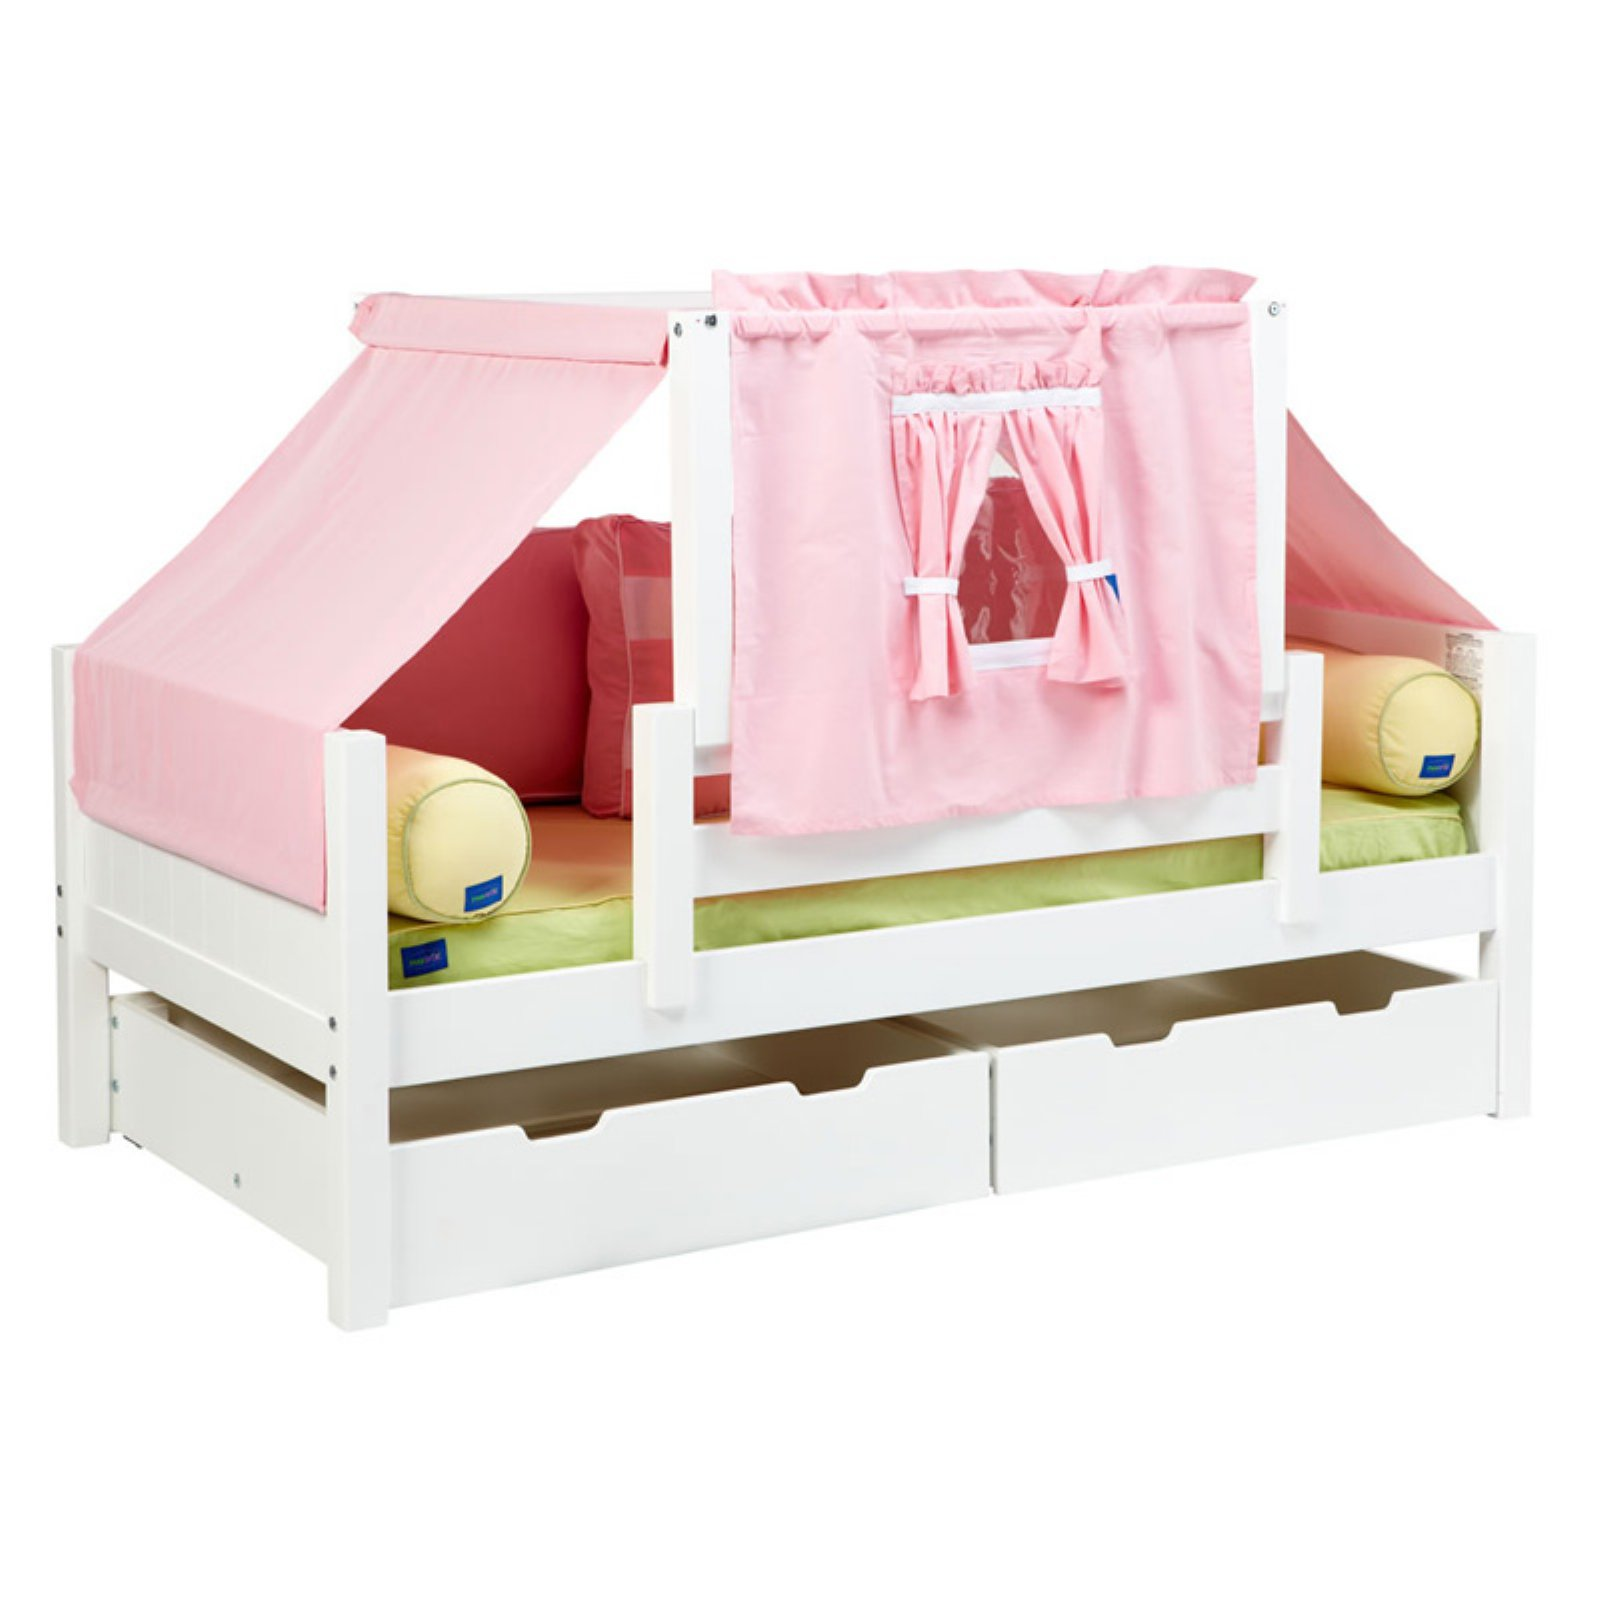 Yo Panel Girl Tent Daybed